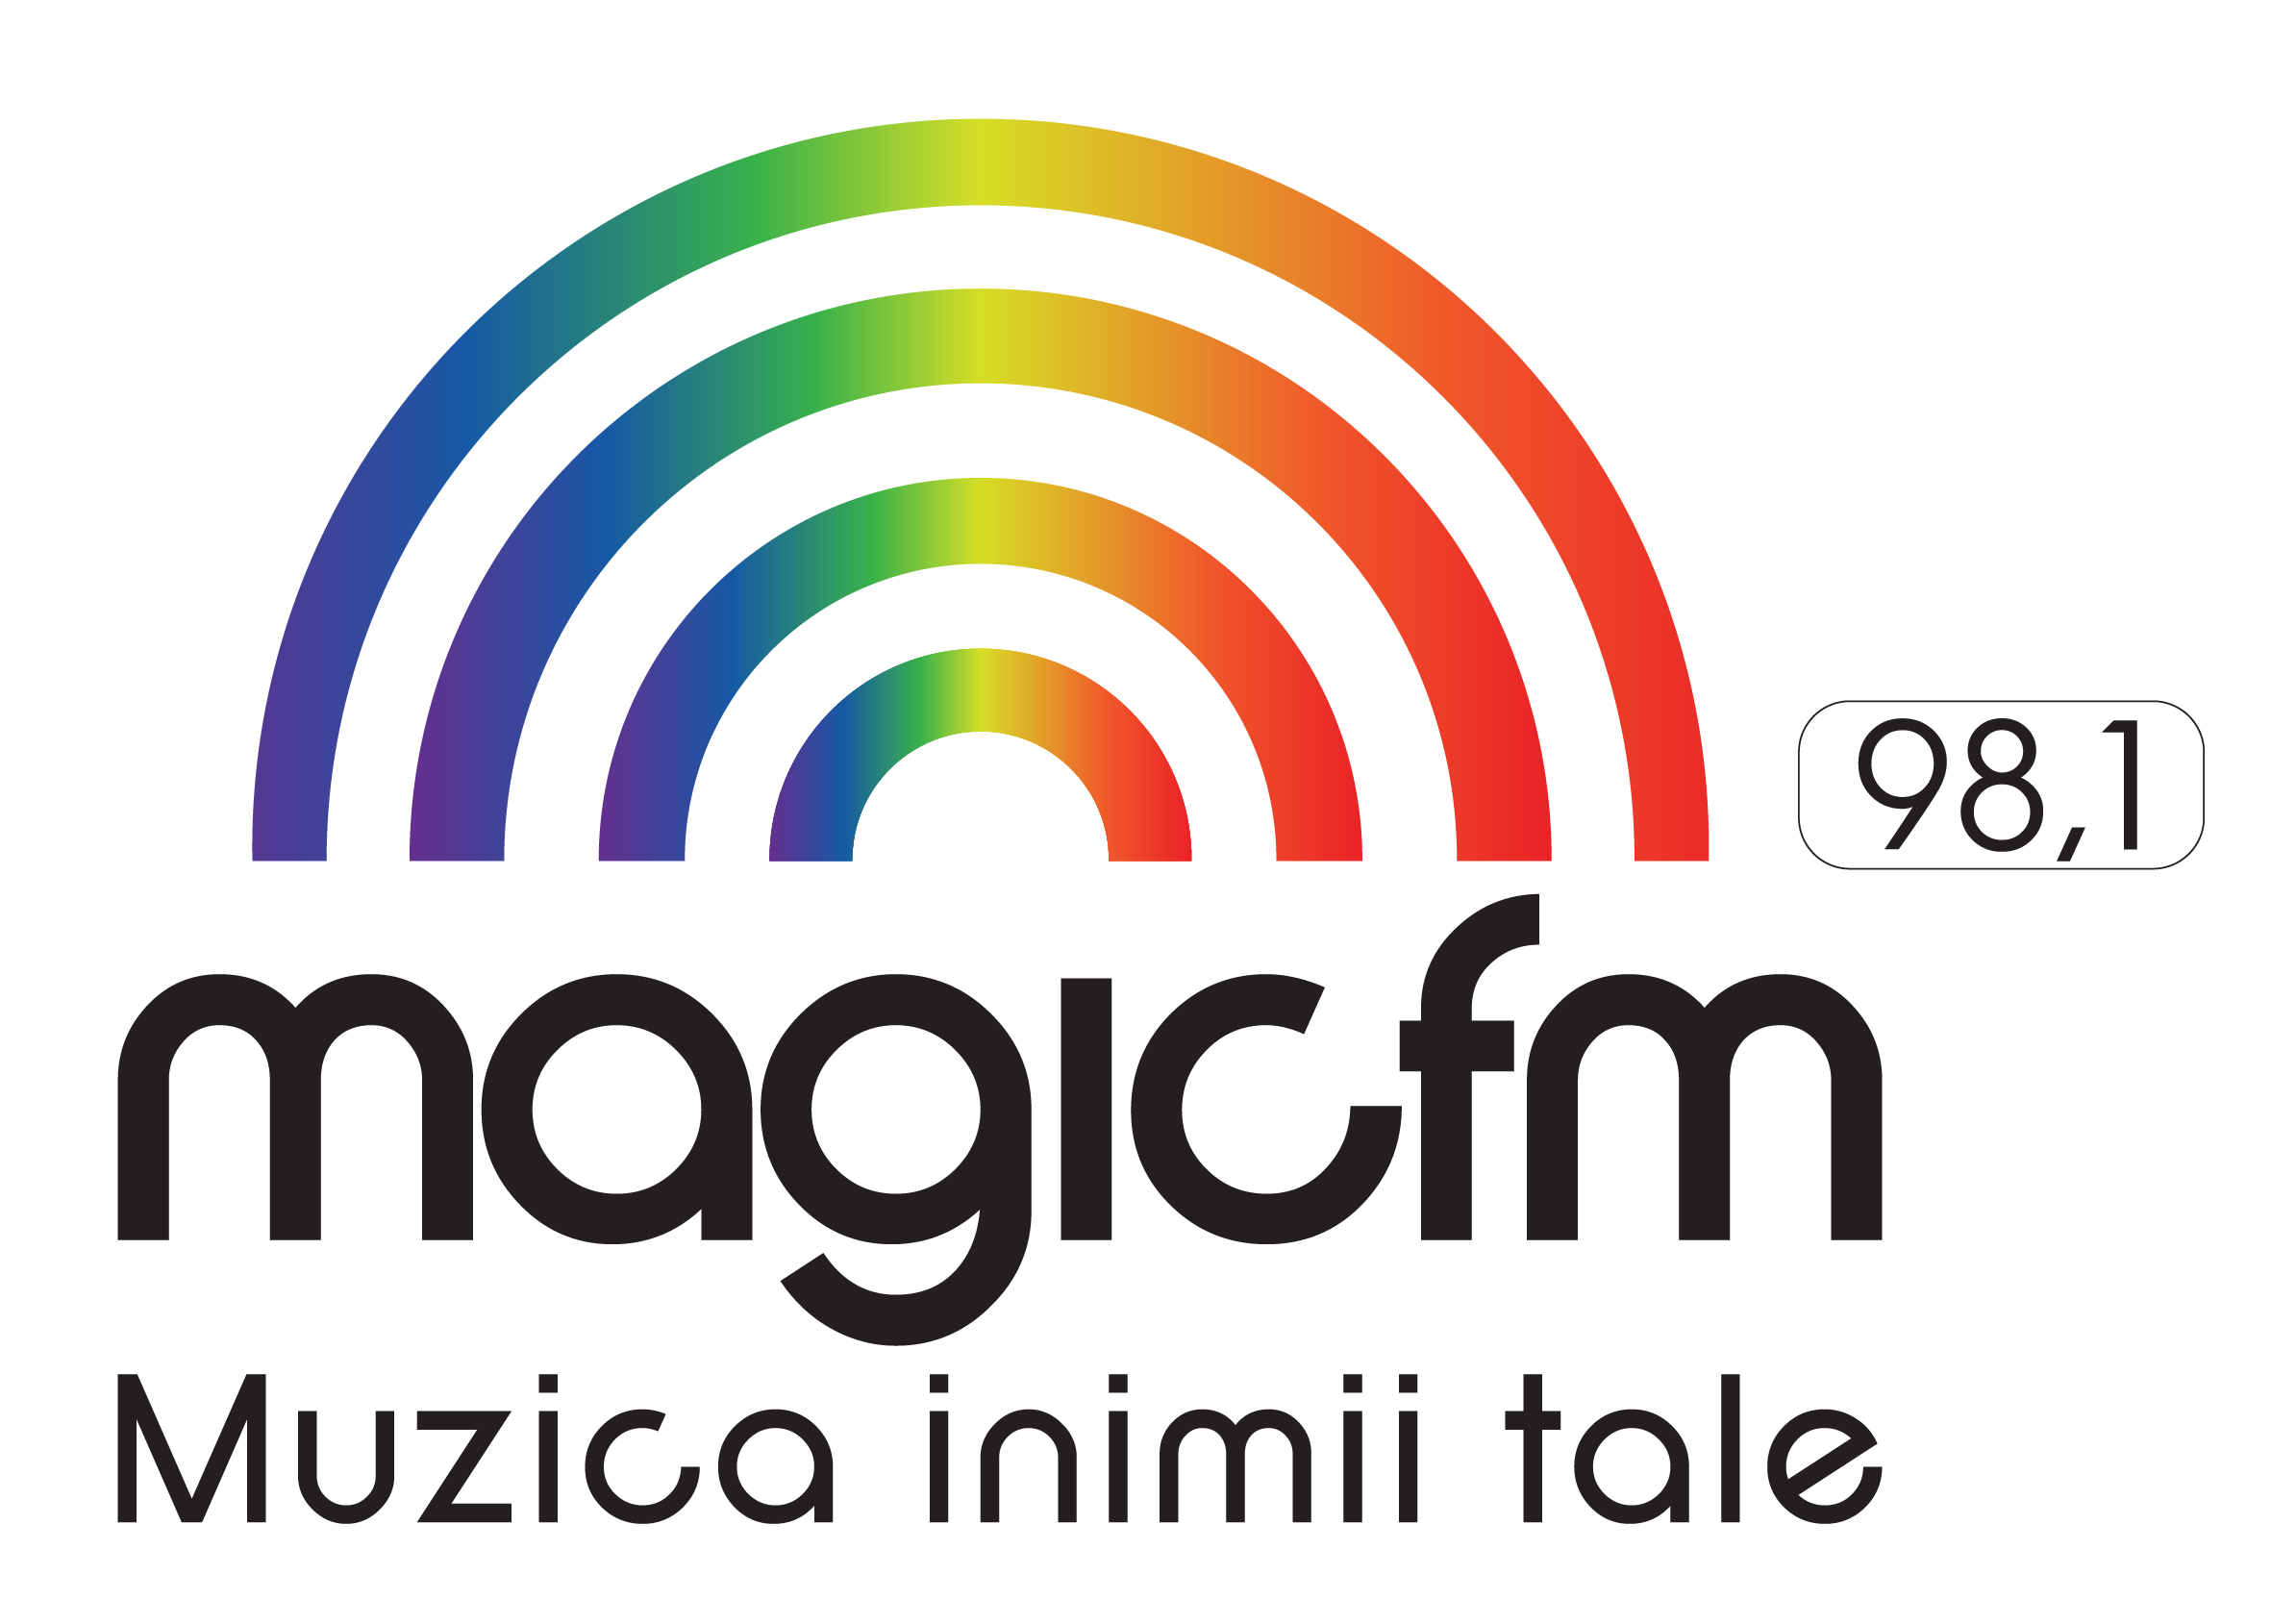 magic fm dating site Pirate fm dating and this prize could mean the magic kingdom awaits for you and your family pirate fm is responsible for delivery of the voucher only.